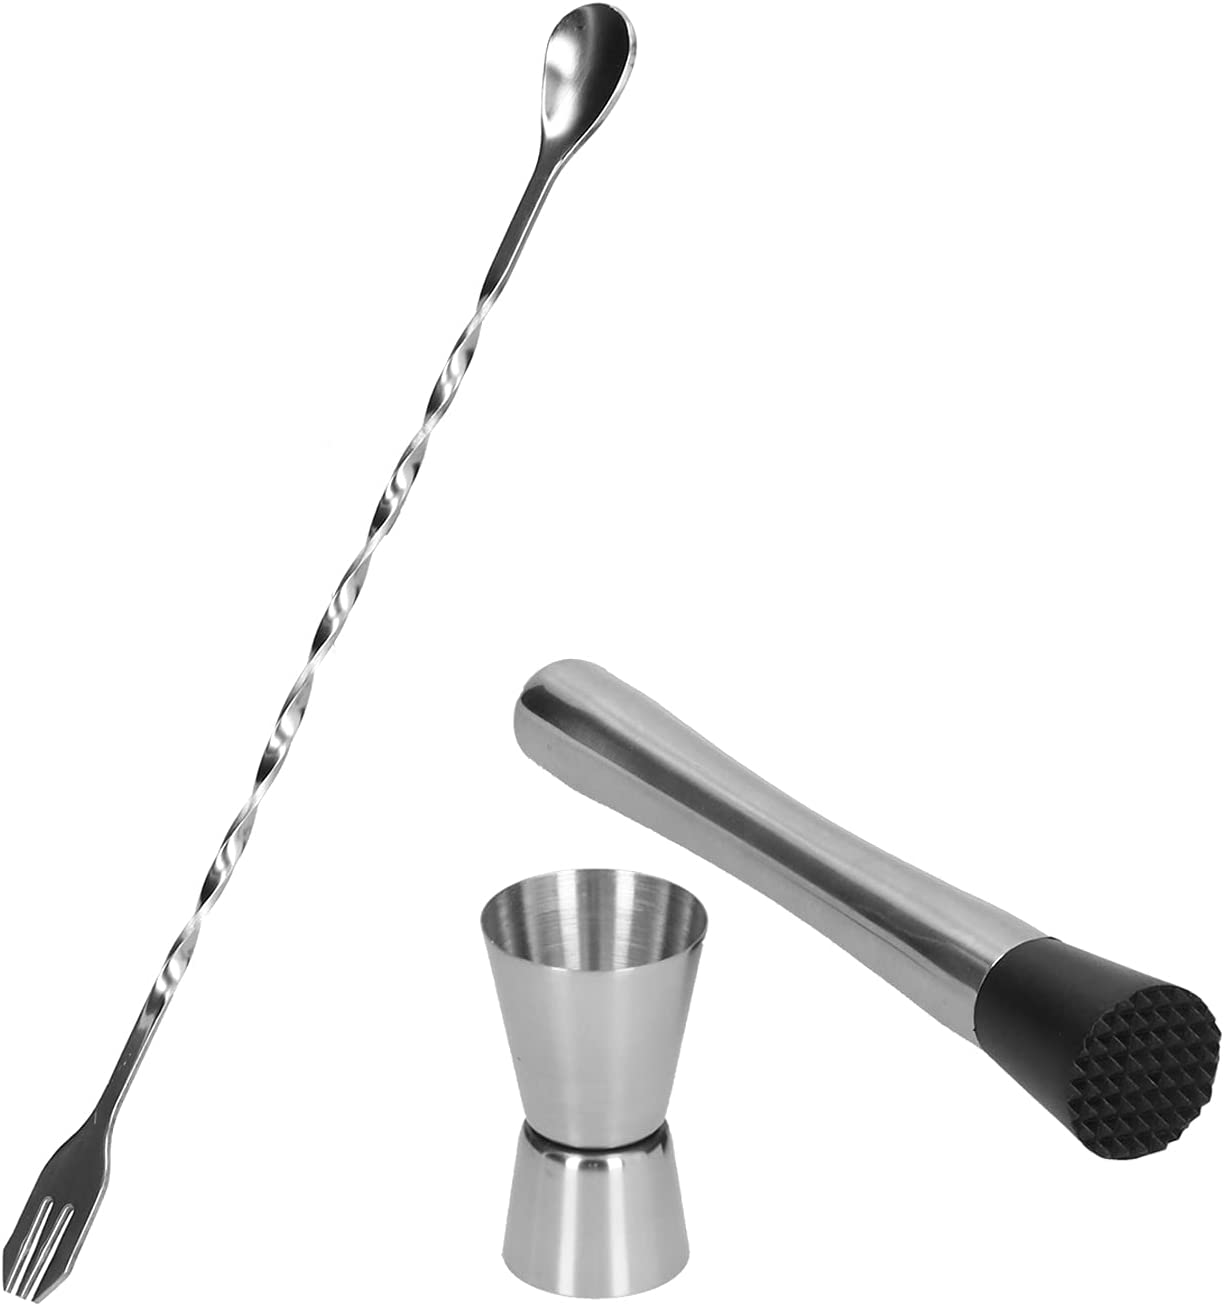 Cocktail Jigger Stainless Steel Appearance Material Long Beach Mall Manufacturer direct delivery Streamlined